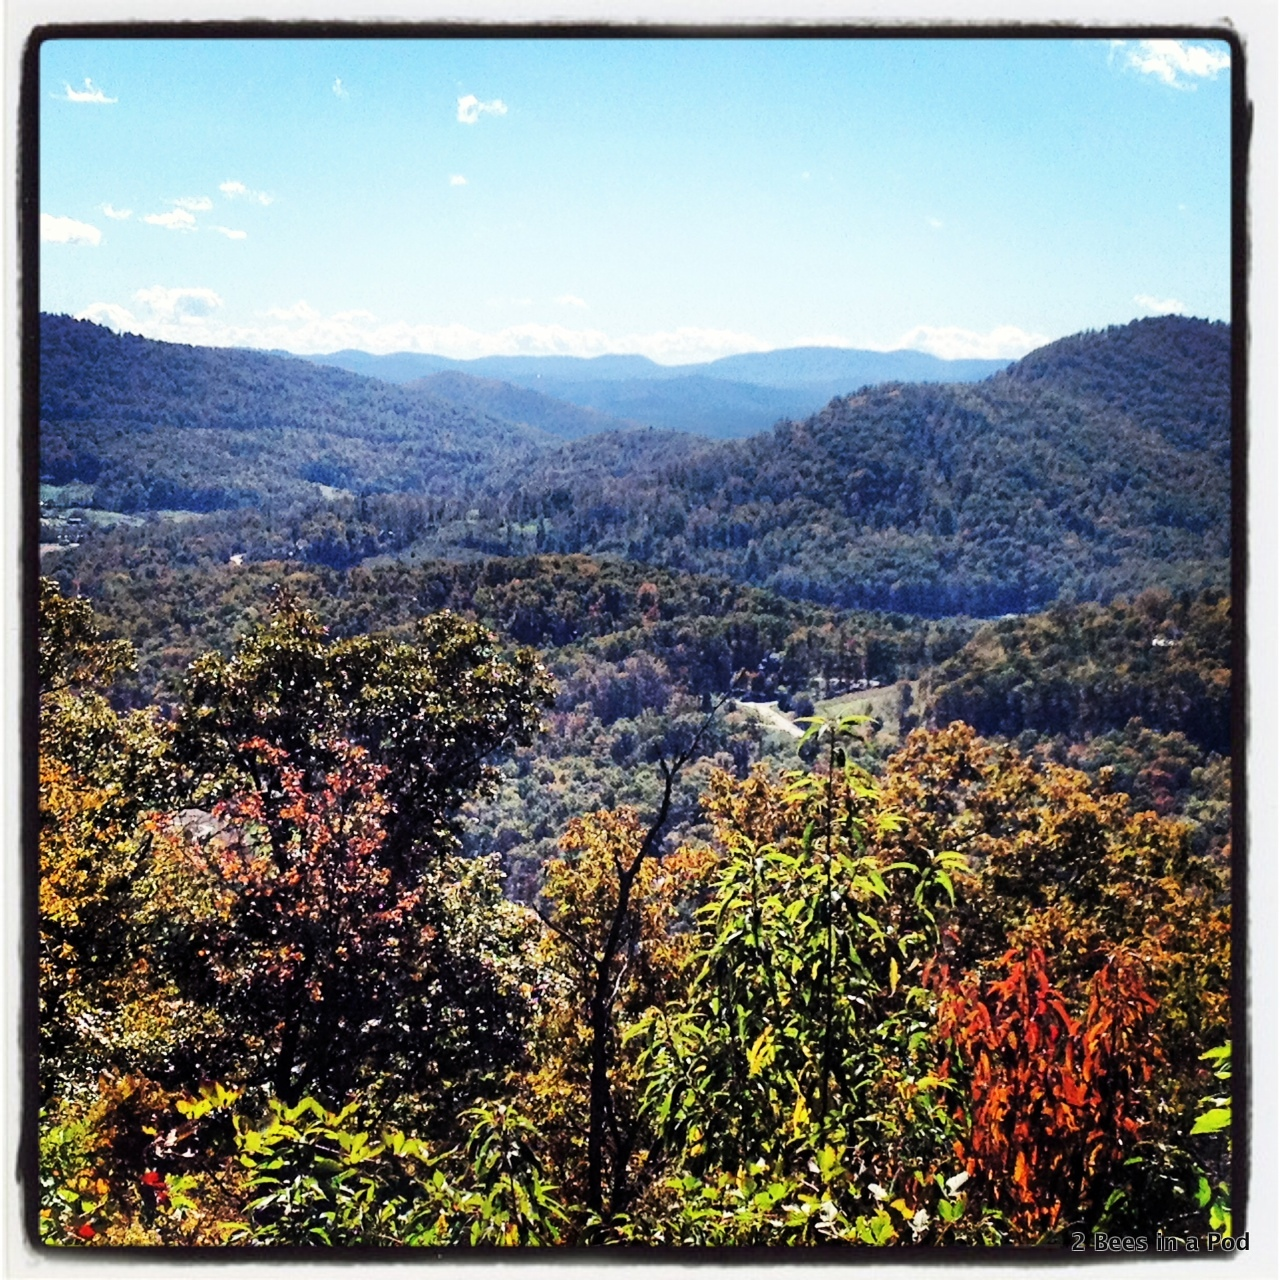 View from Blue Ridge Parkway in Asheville. Leaves changing colors. Fall in the Mountains